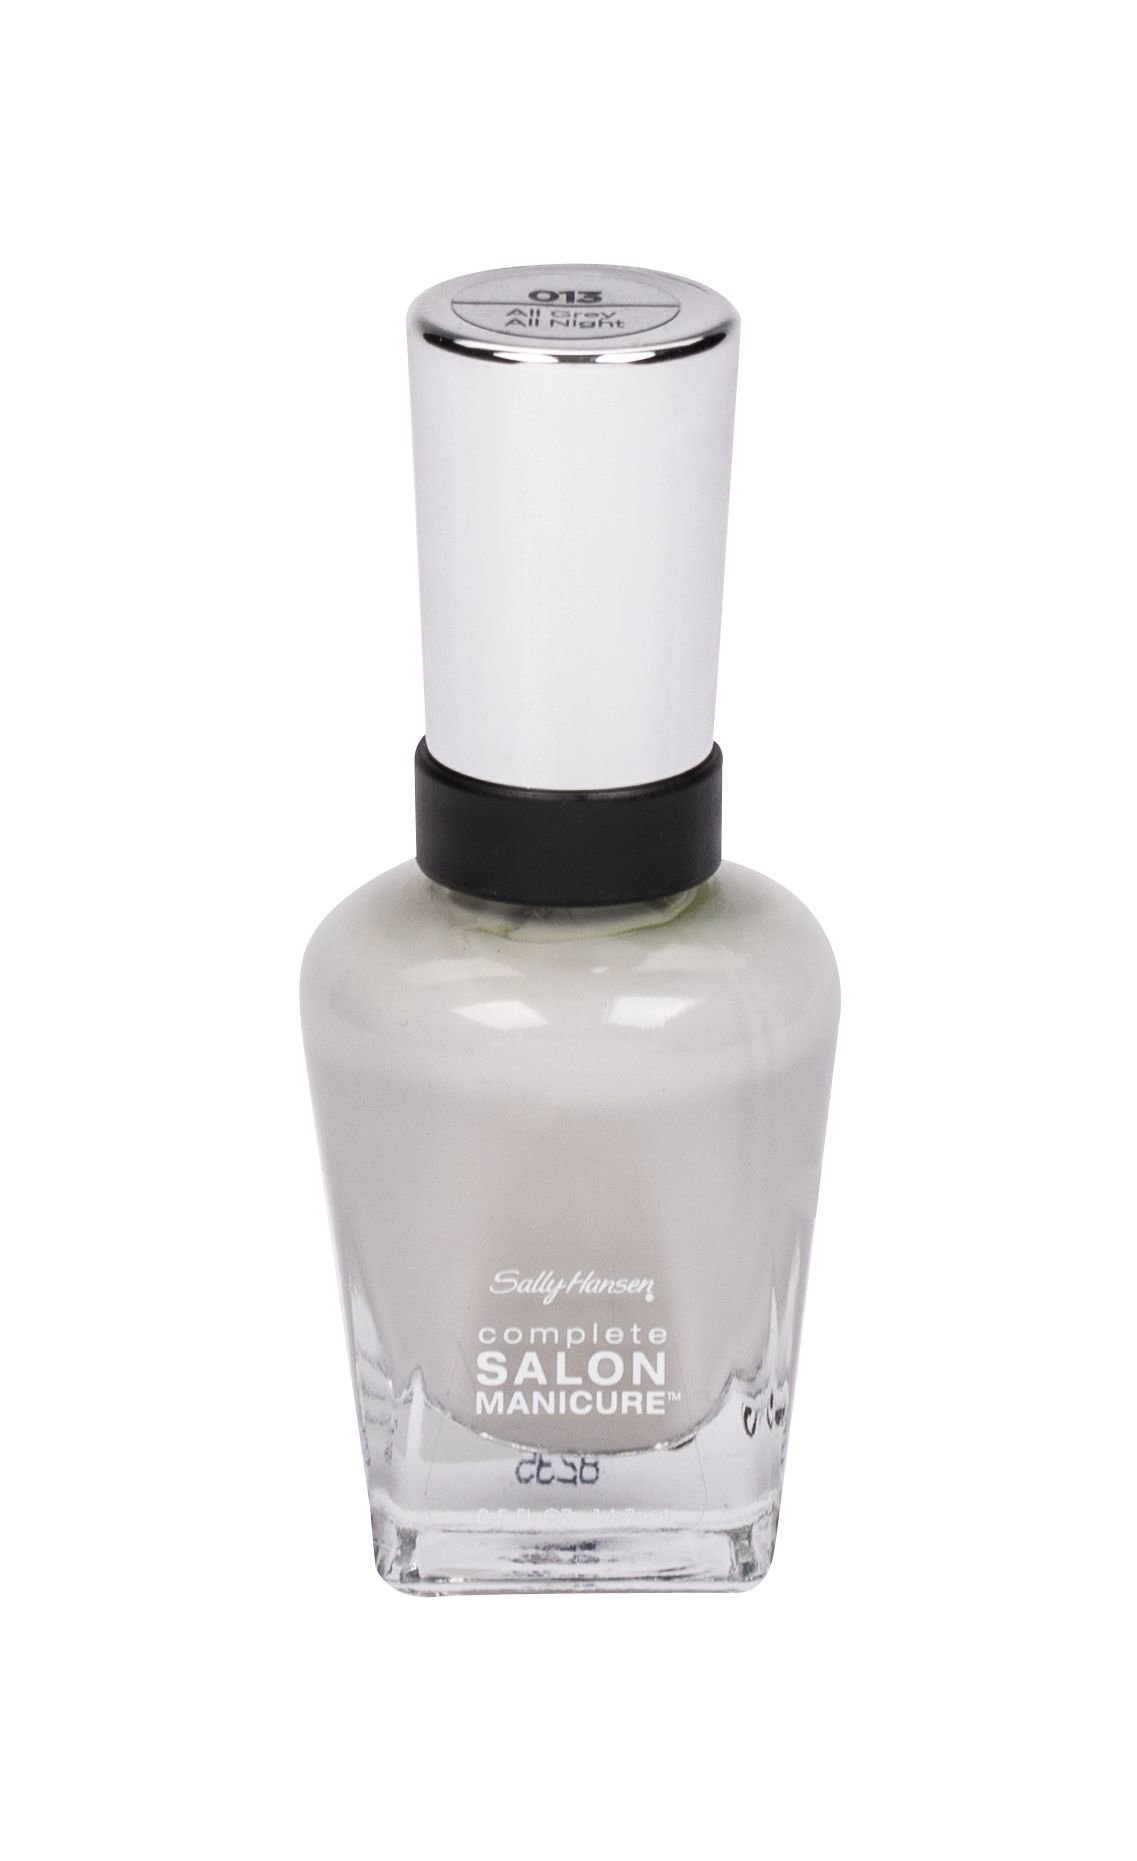 Sally Hansen Complete Salon Manicure Nail Polish 14,7ml 013 All Grey